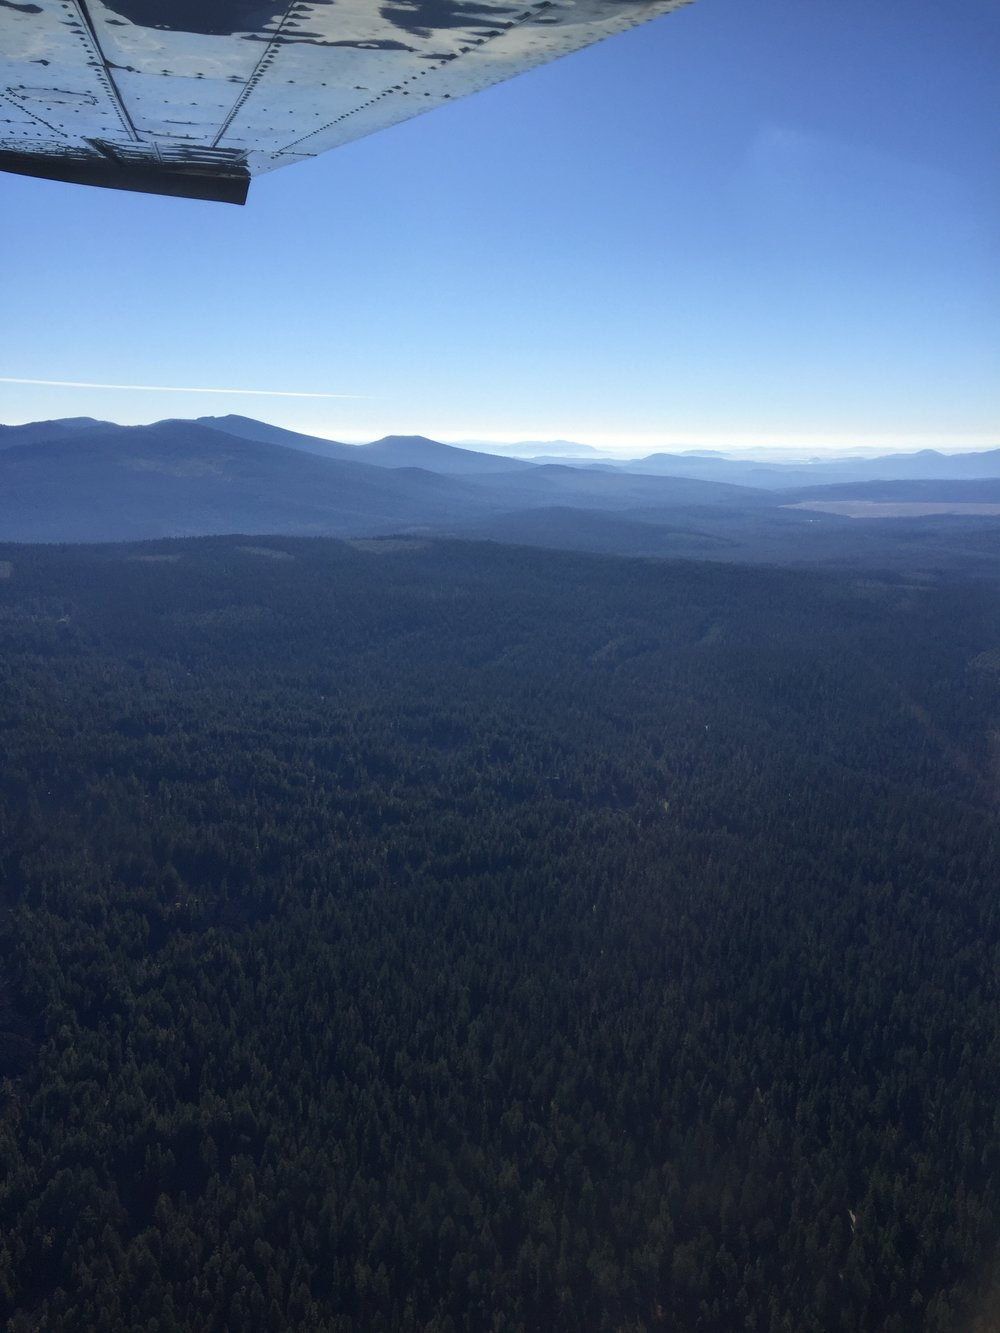 The view from above the Rogue River-Siskiyou National Forest near where the Pacific Connector Pipeline would cross the Pacific Crest Trail The proposed fracked gas pipeline would clear-cut a 95-foot buffer along the entire pipeline route.